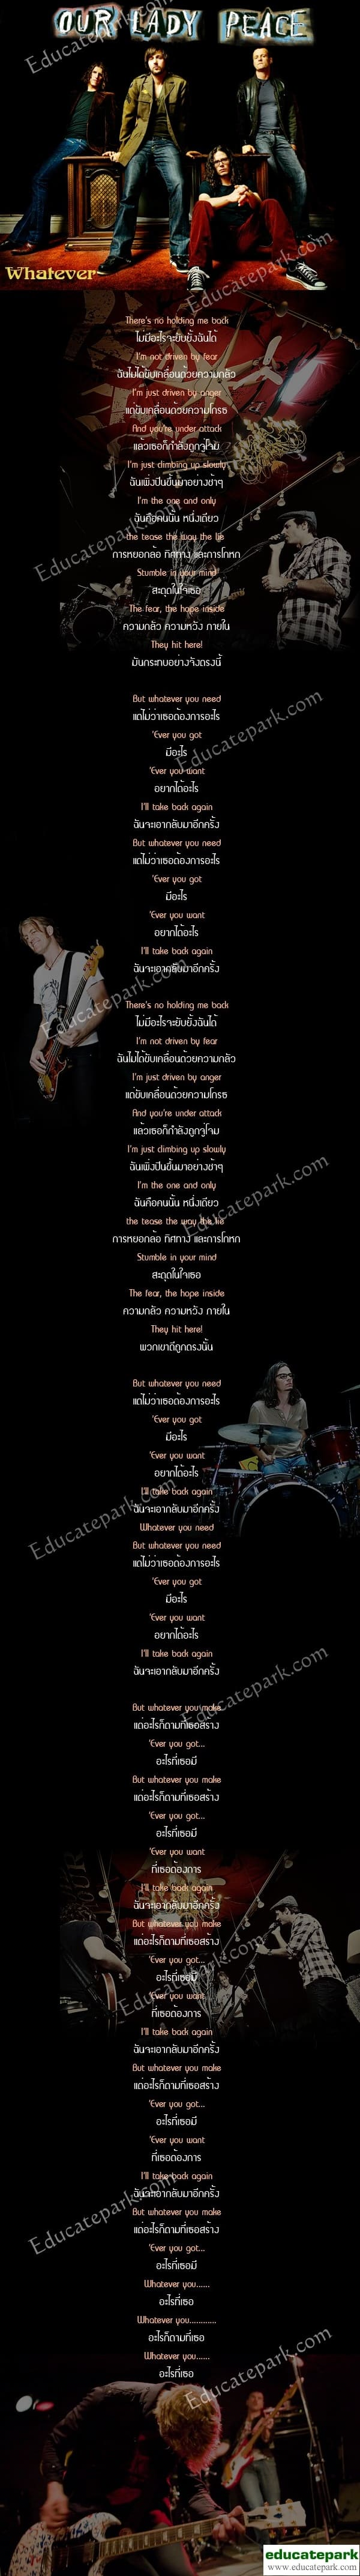 แปลเพลง Whatever - Our Lady Peace